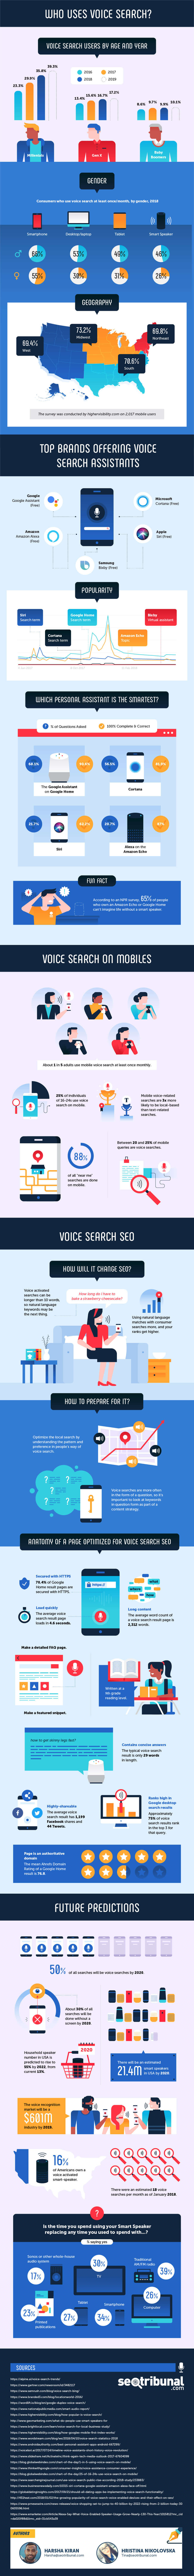 Evolution of voice search 2